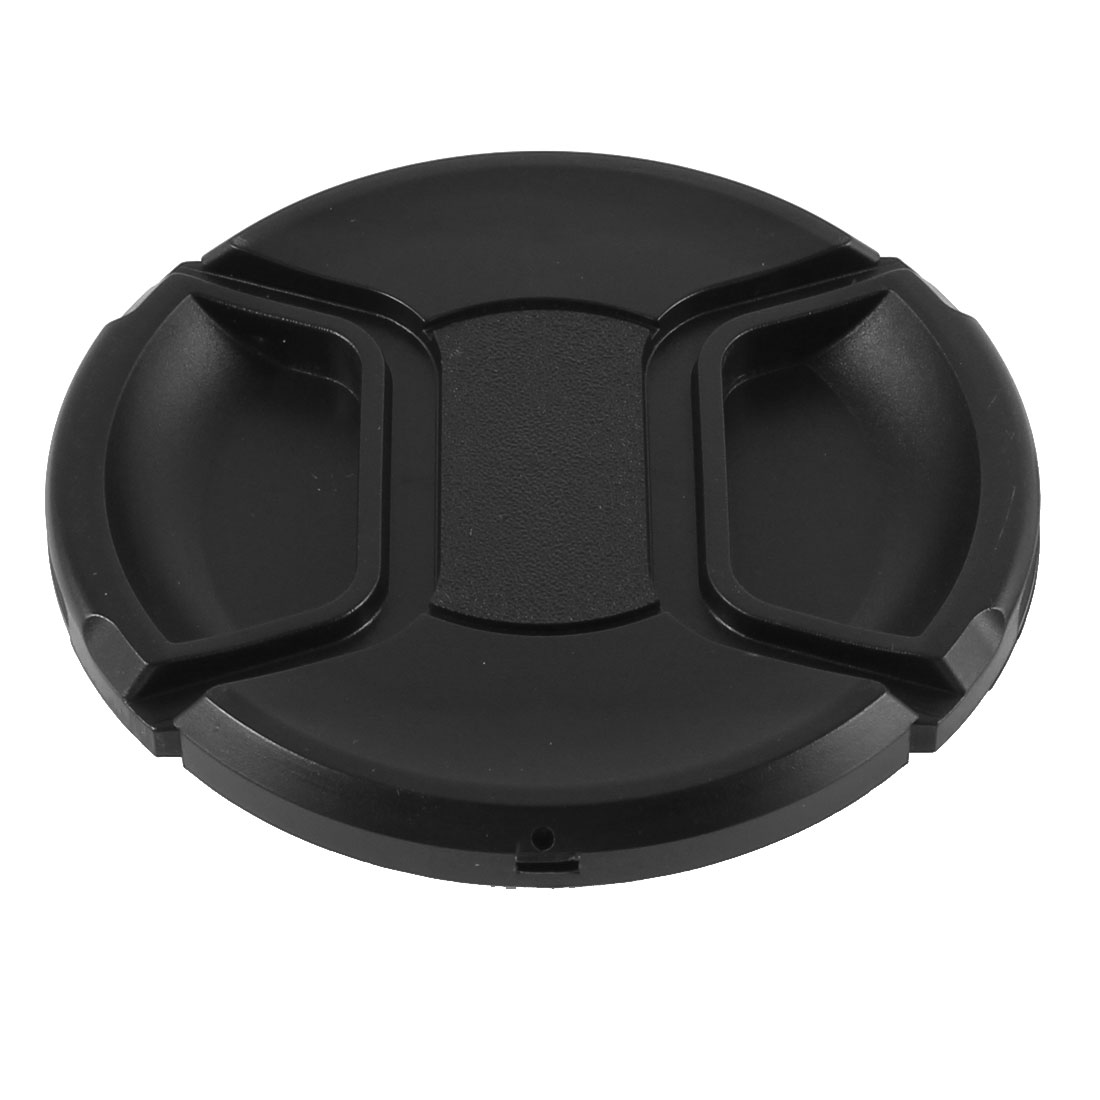 Univeral 82mm Center Pinch Front Lens Cap for DSLR Camera